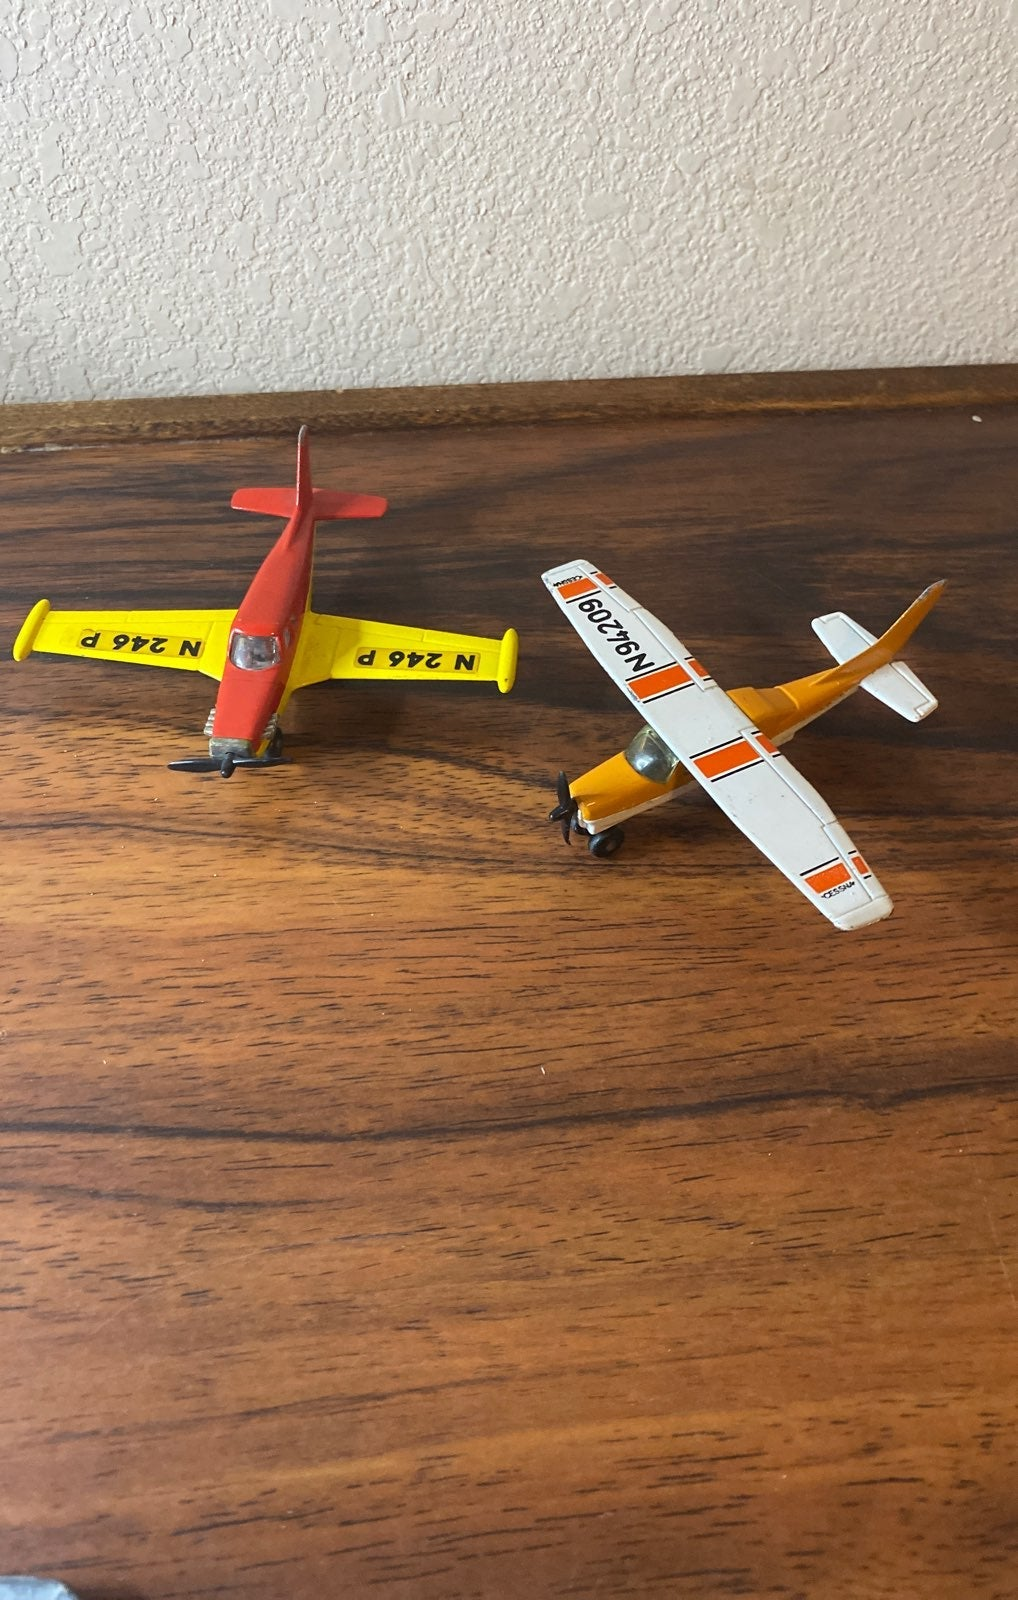 1974/76 matchbox toy planes